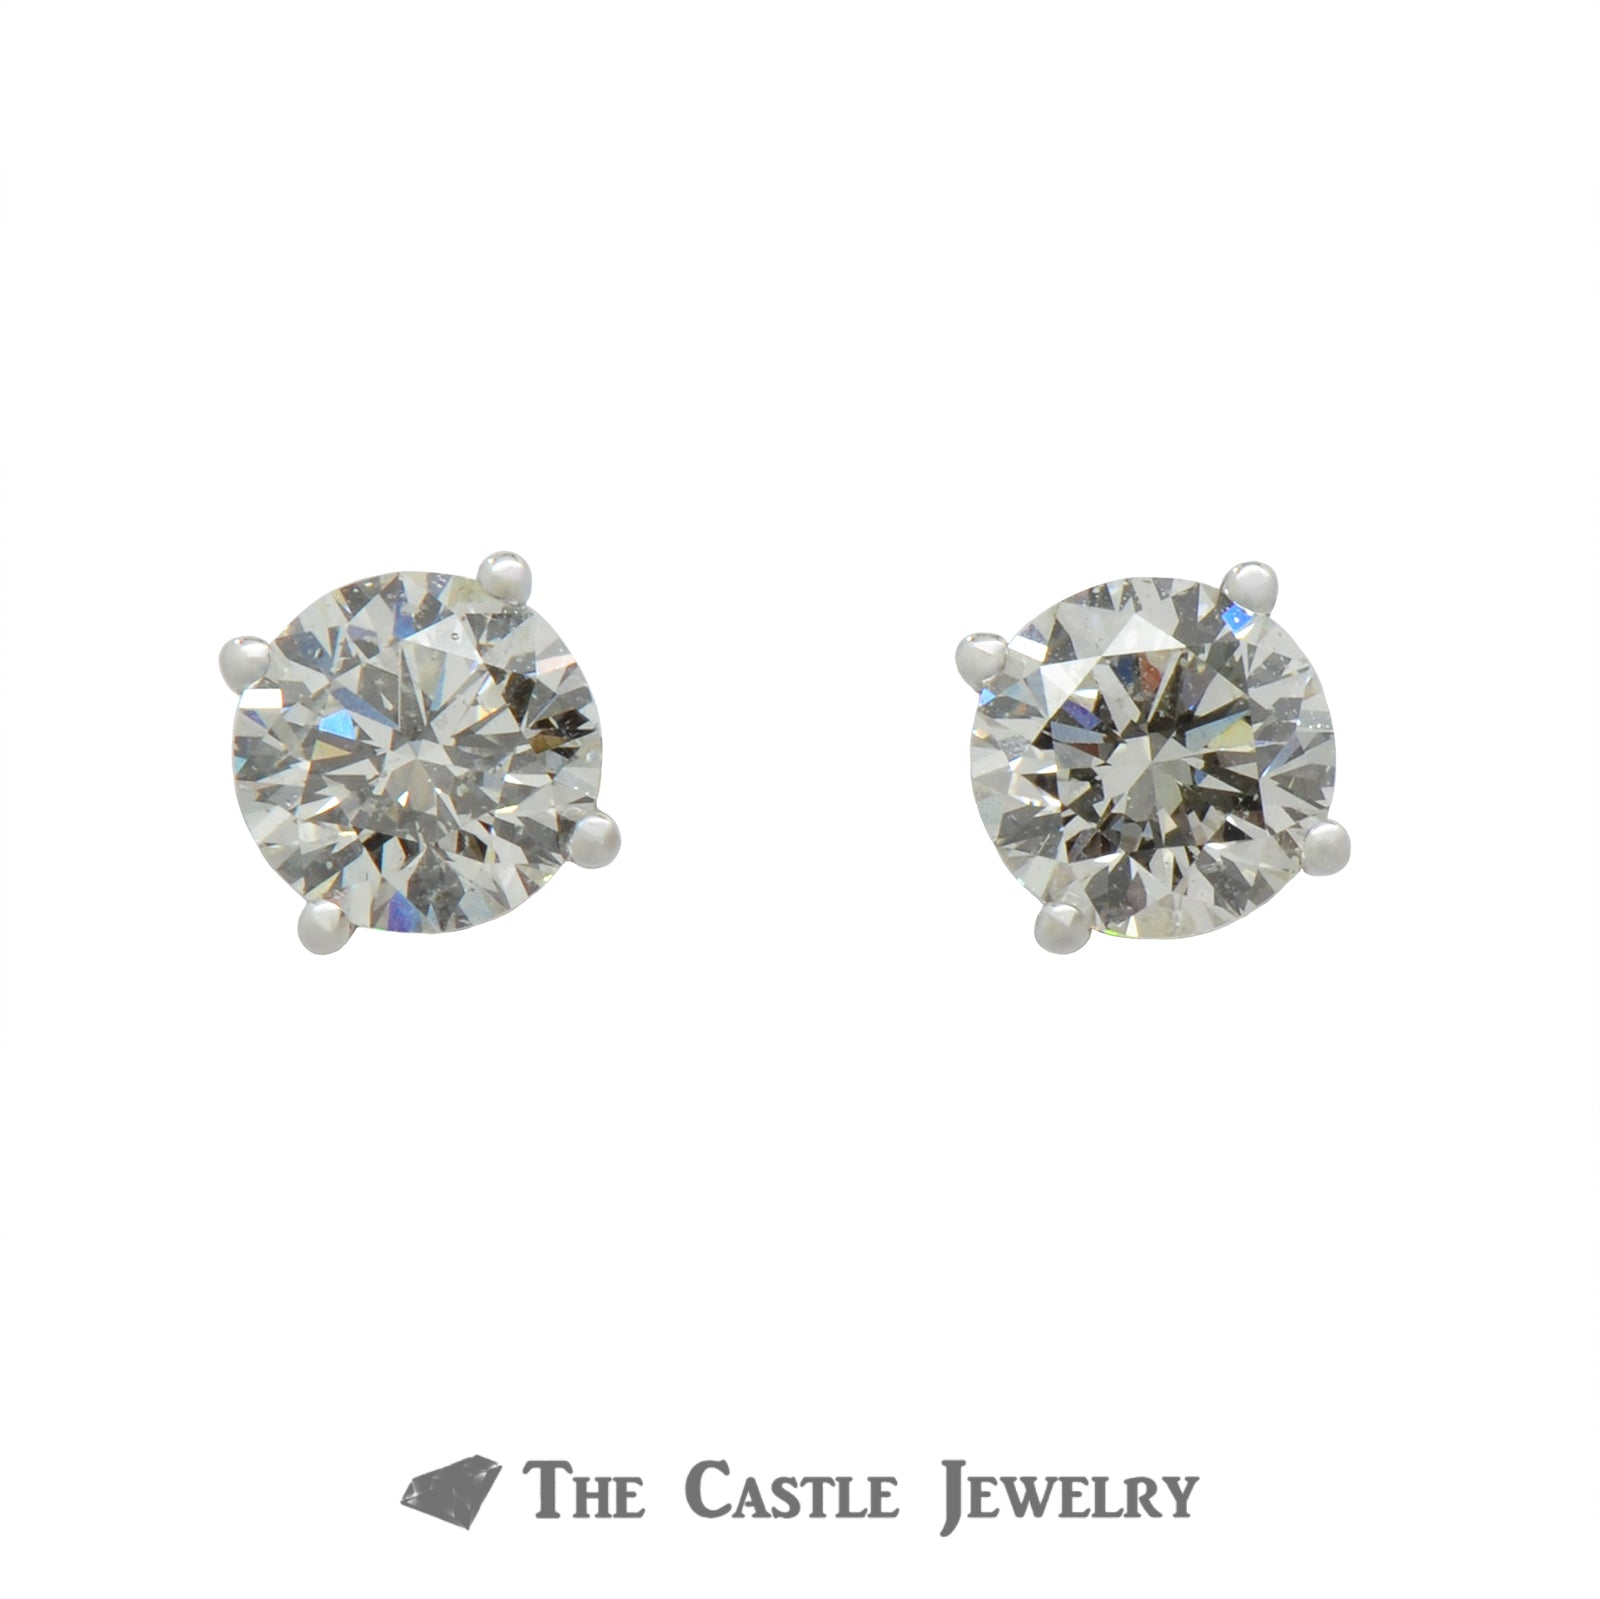 Lab Grown Round Brilliant Diamond Stud Earrings 1.42 cttw In 14KT White Gold